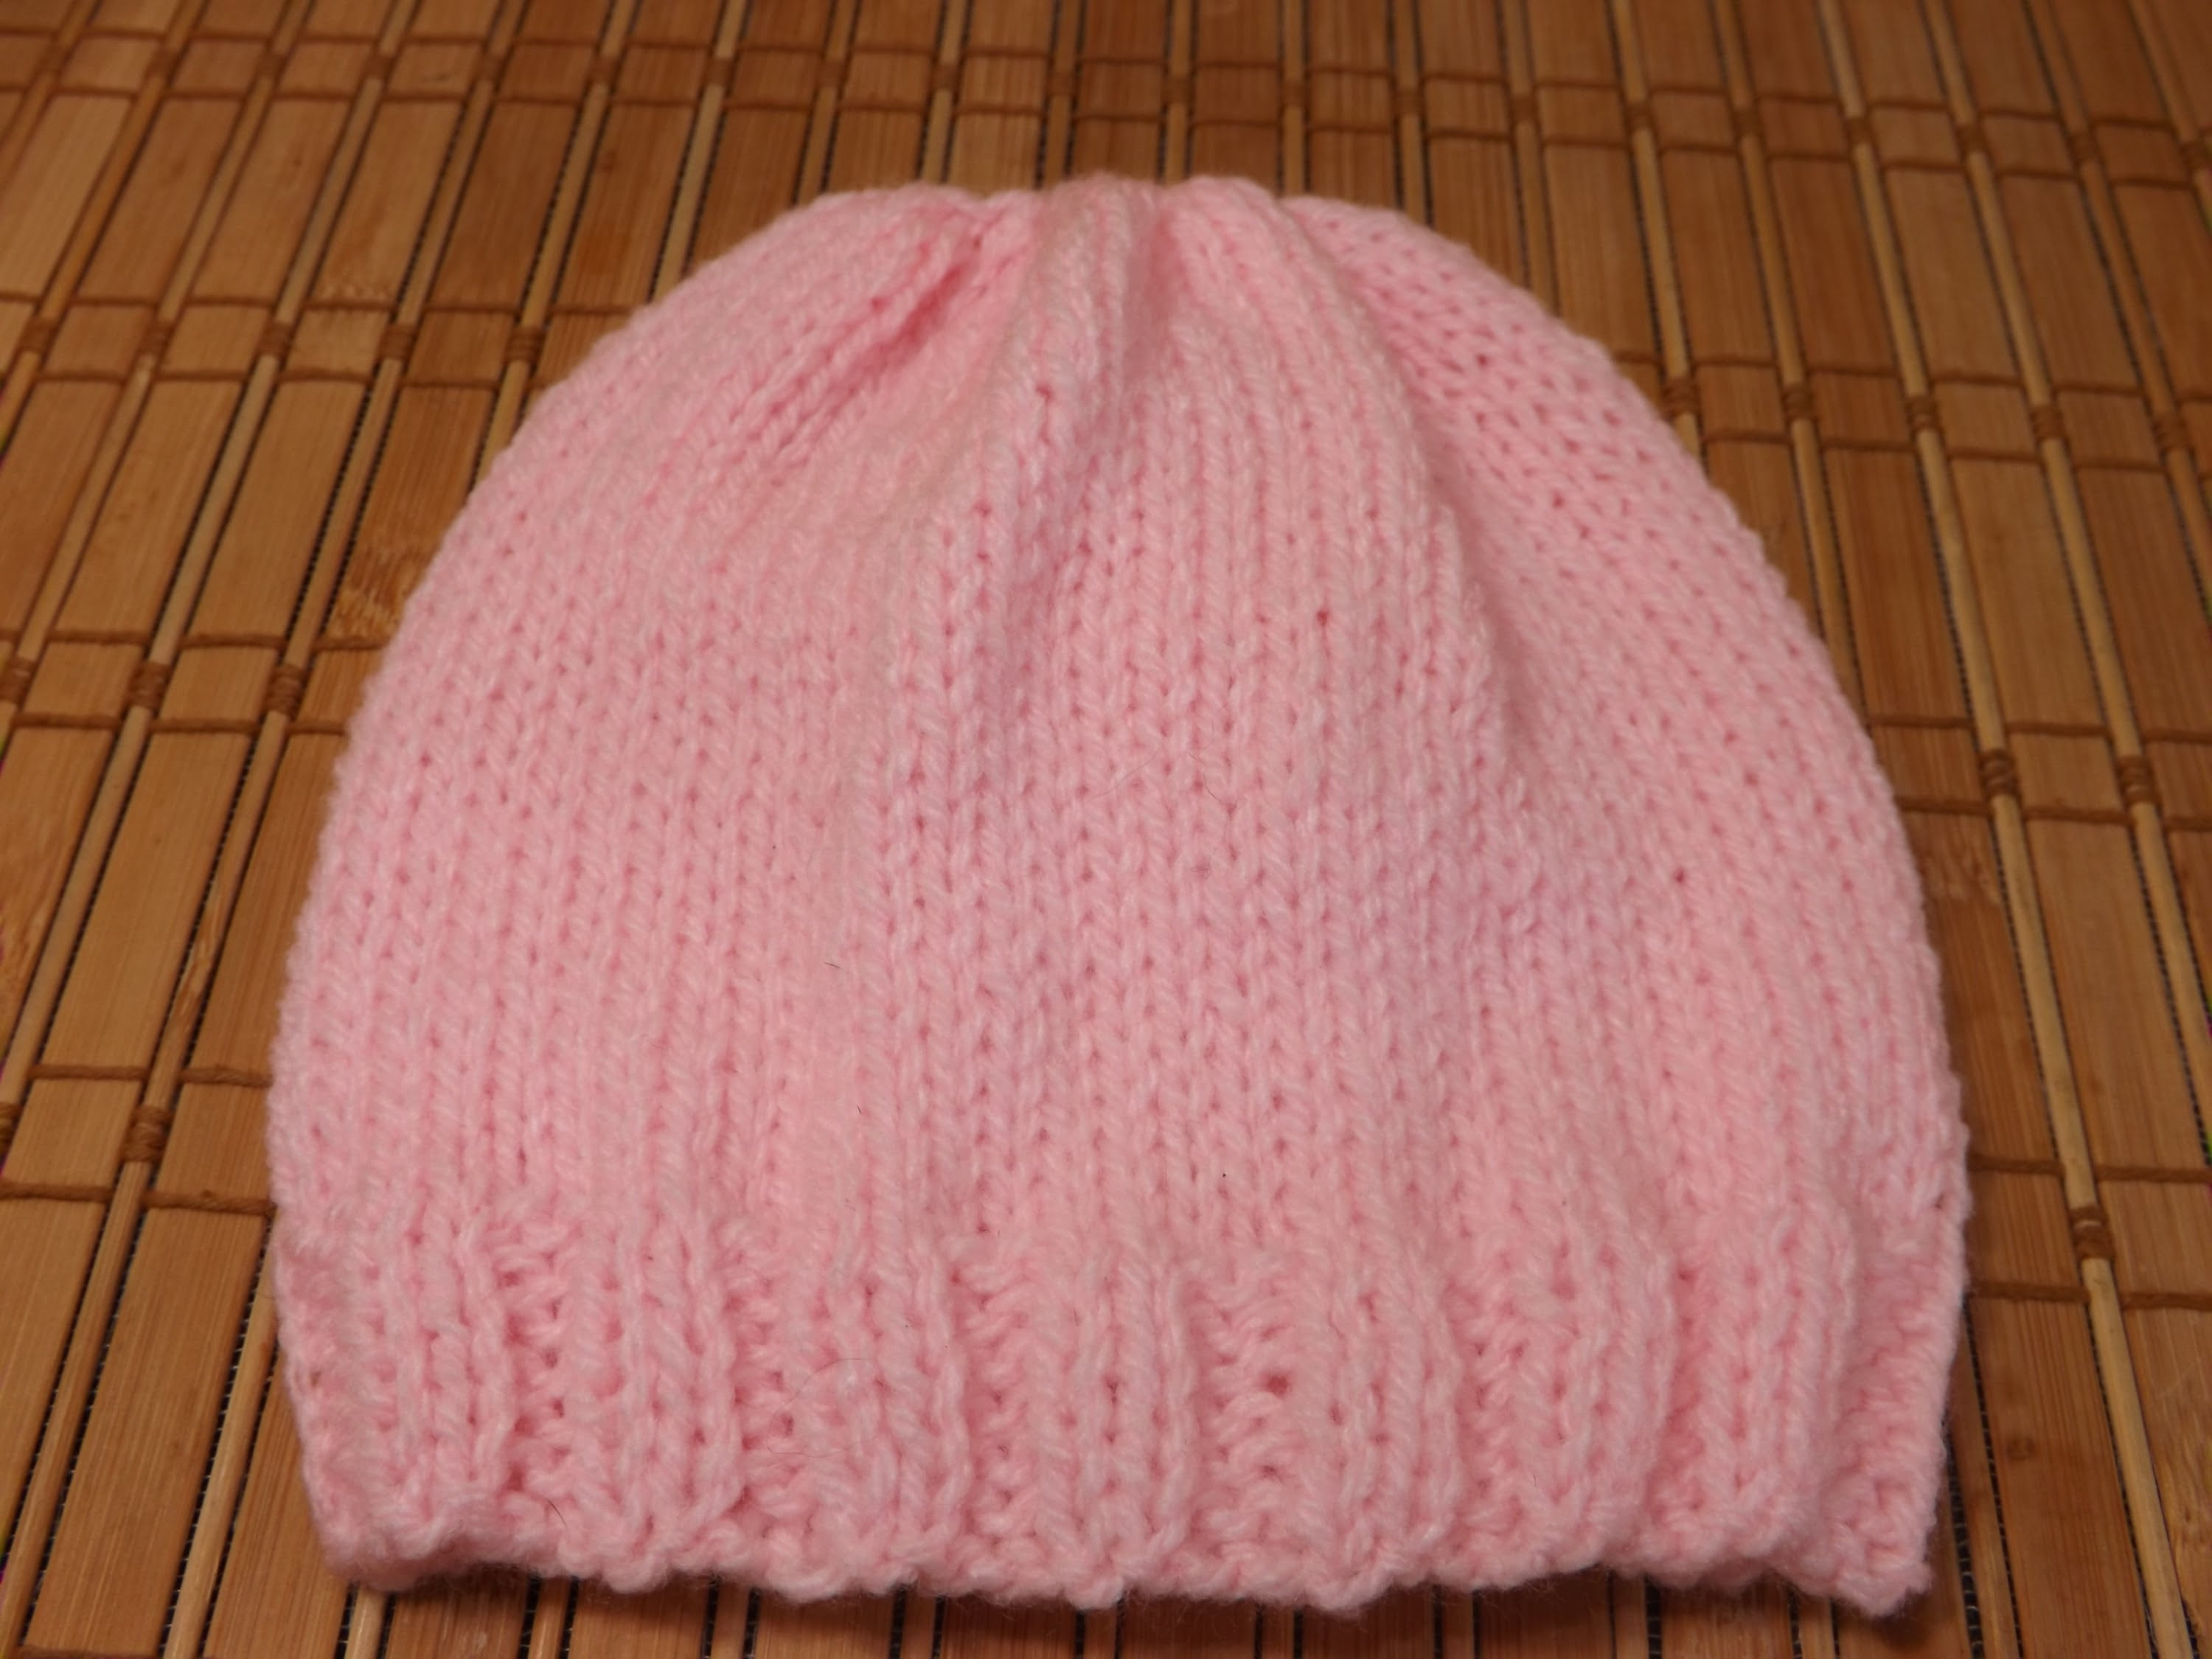 Baby Hat Patterns To Knit Different Ba Hat Knitting Patterns Crochet And Knitting Patterns